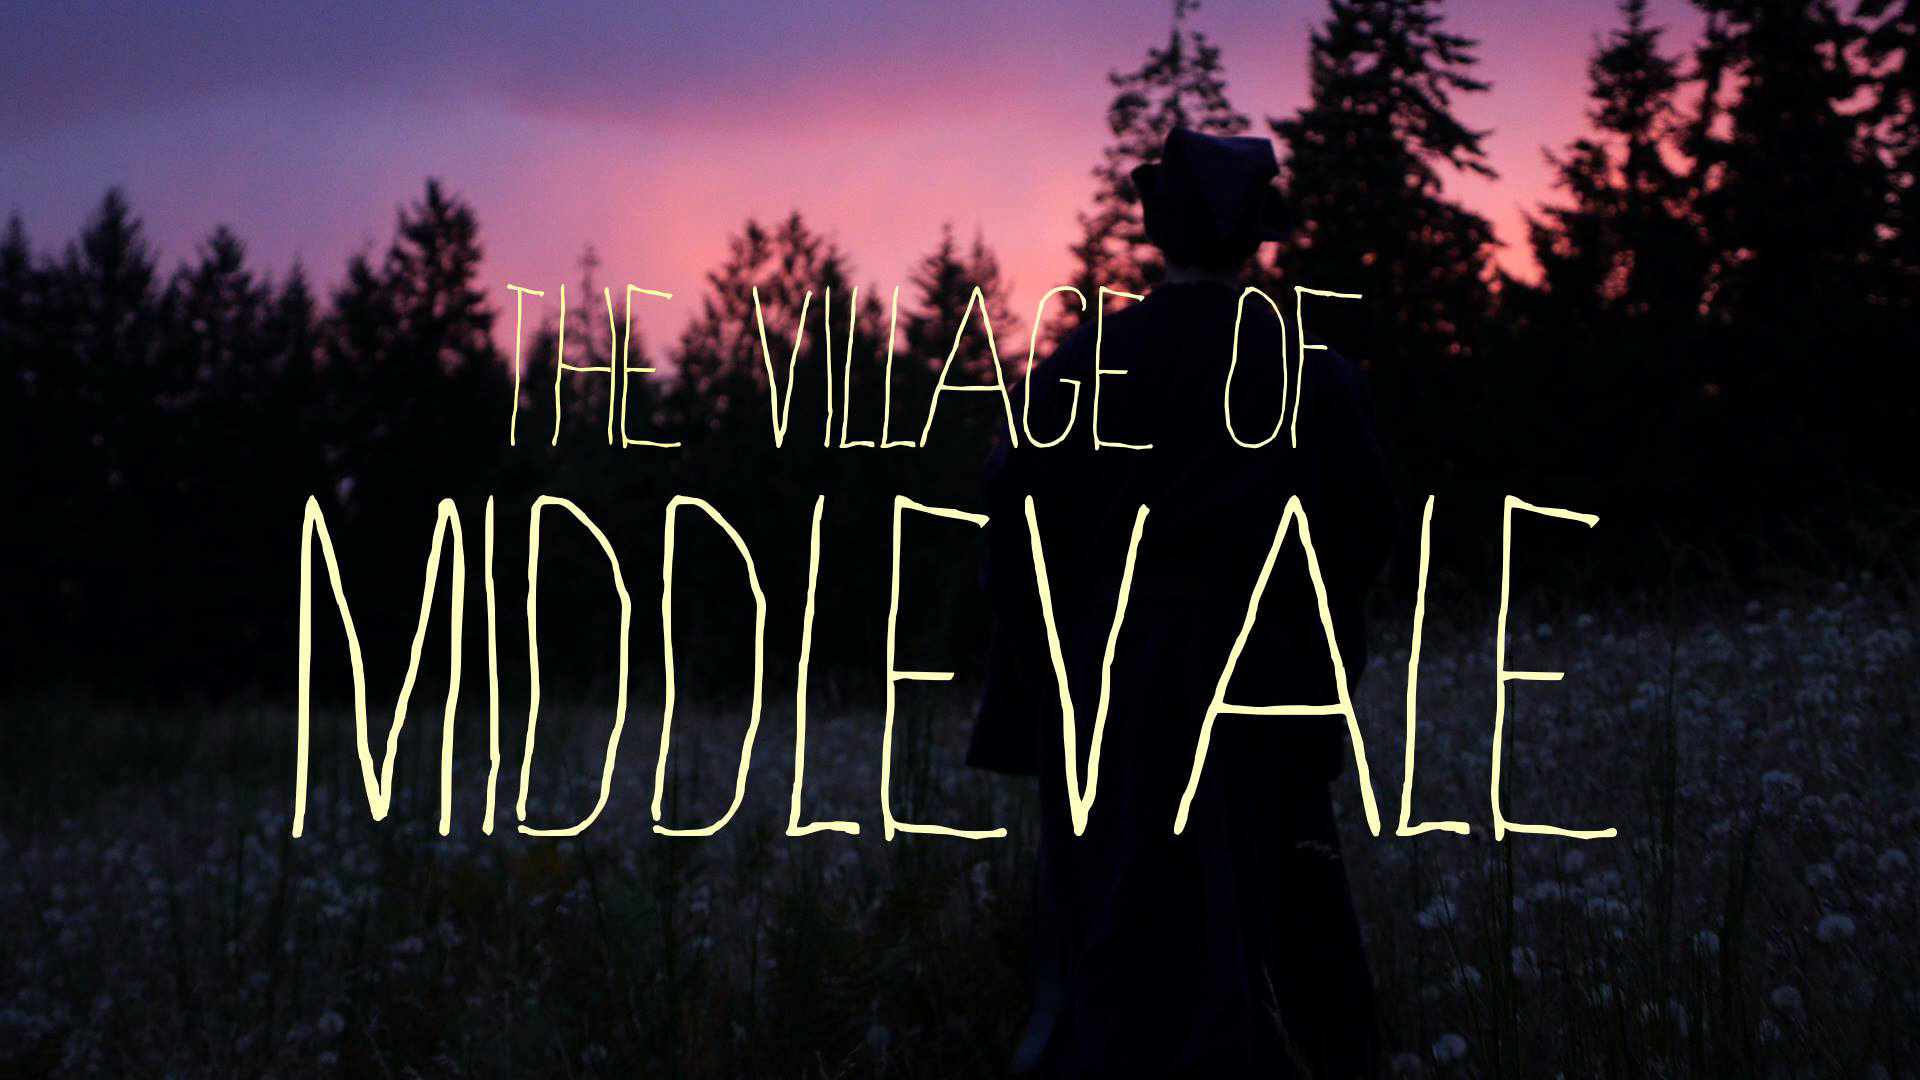 The Village of Middlevale